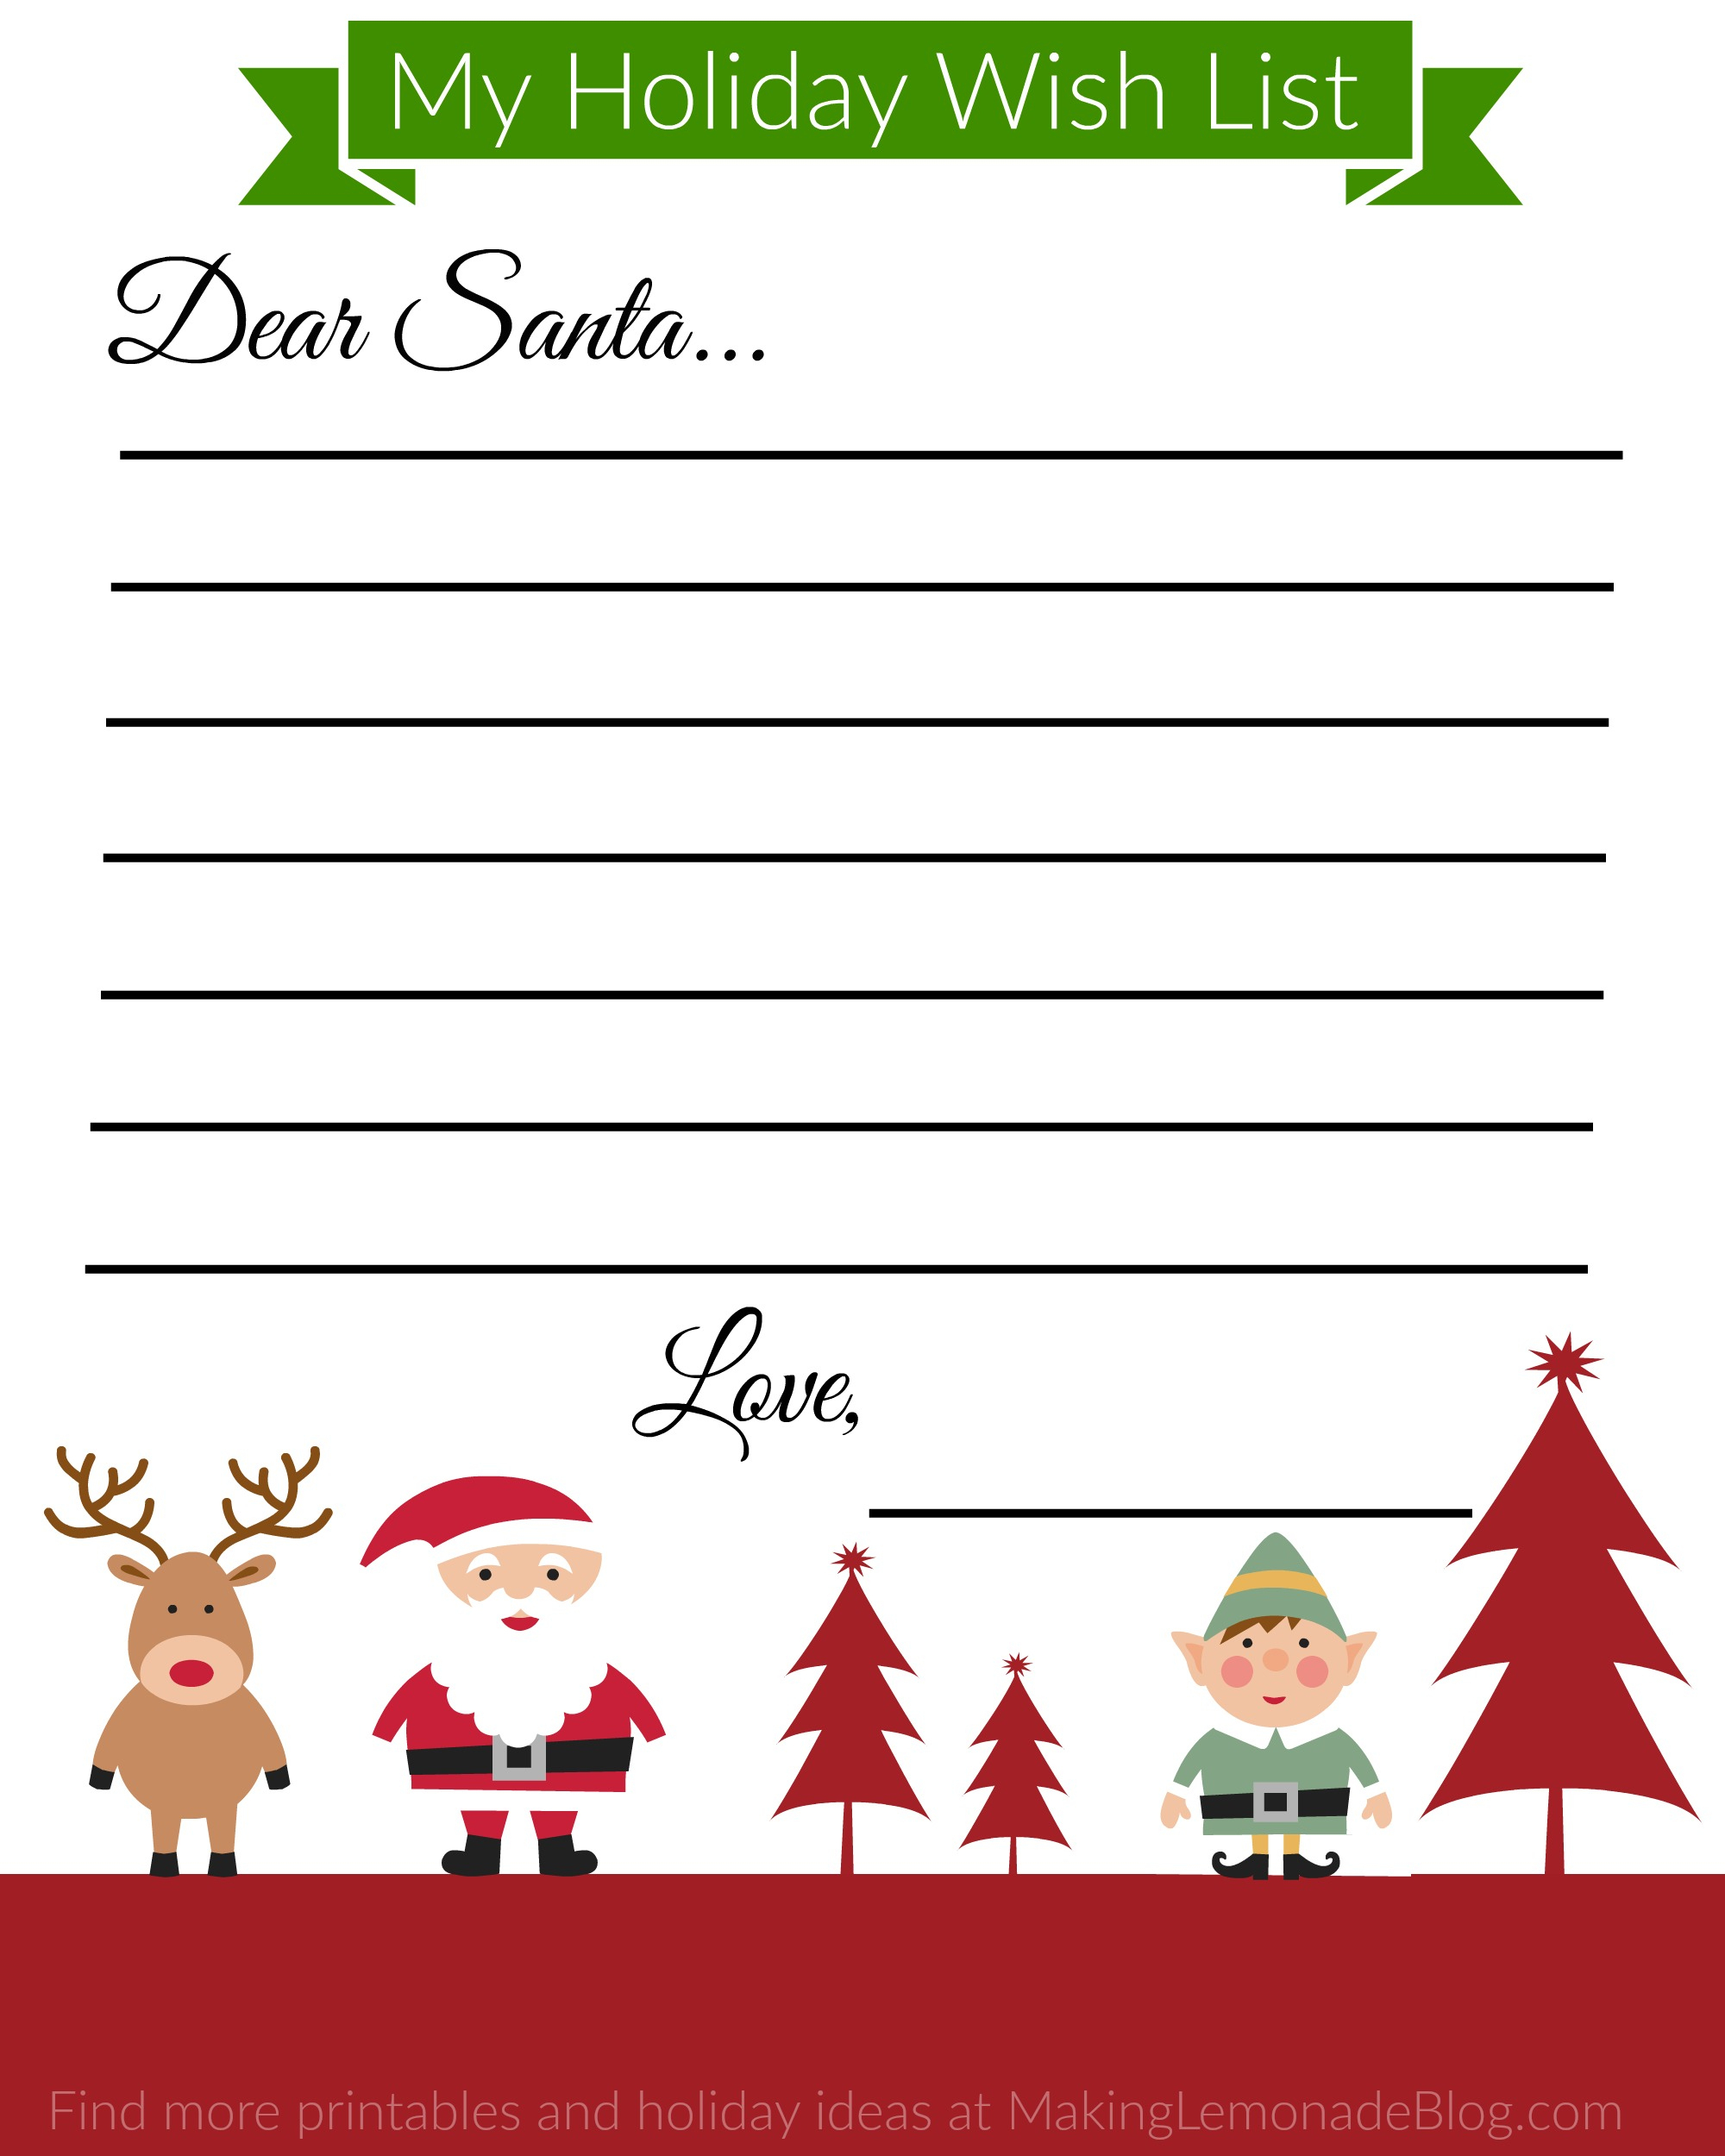 Free Printable Holiday Wish List For Kids - Free Printable Christmas Wish List